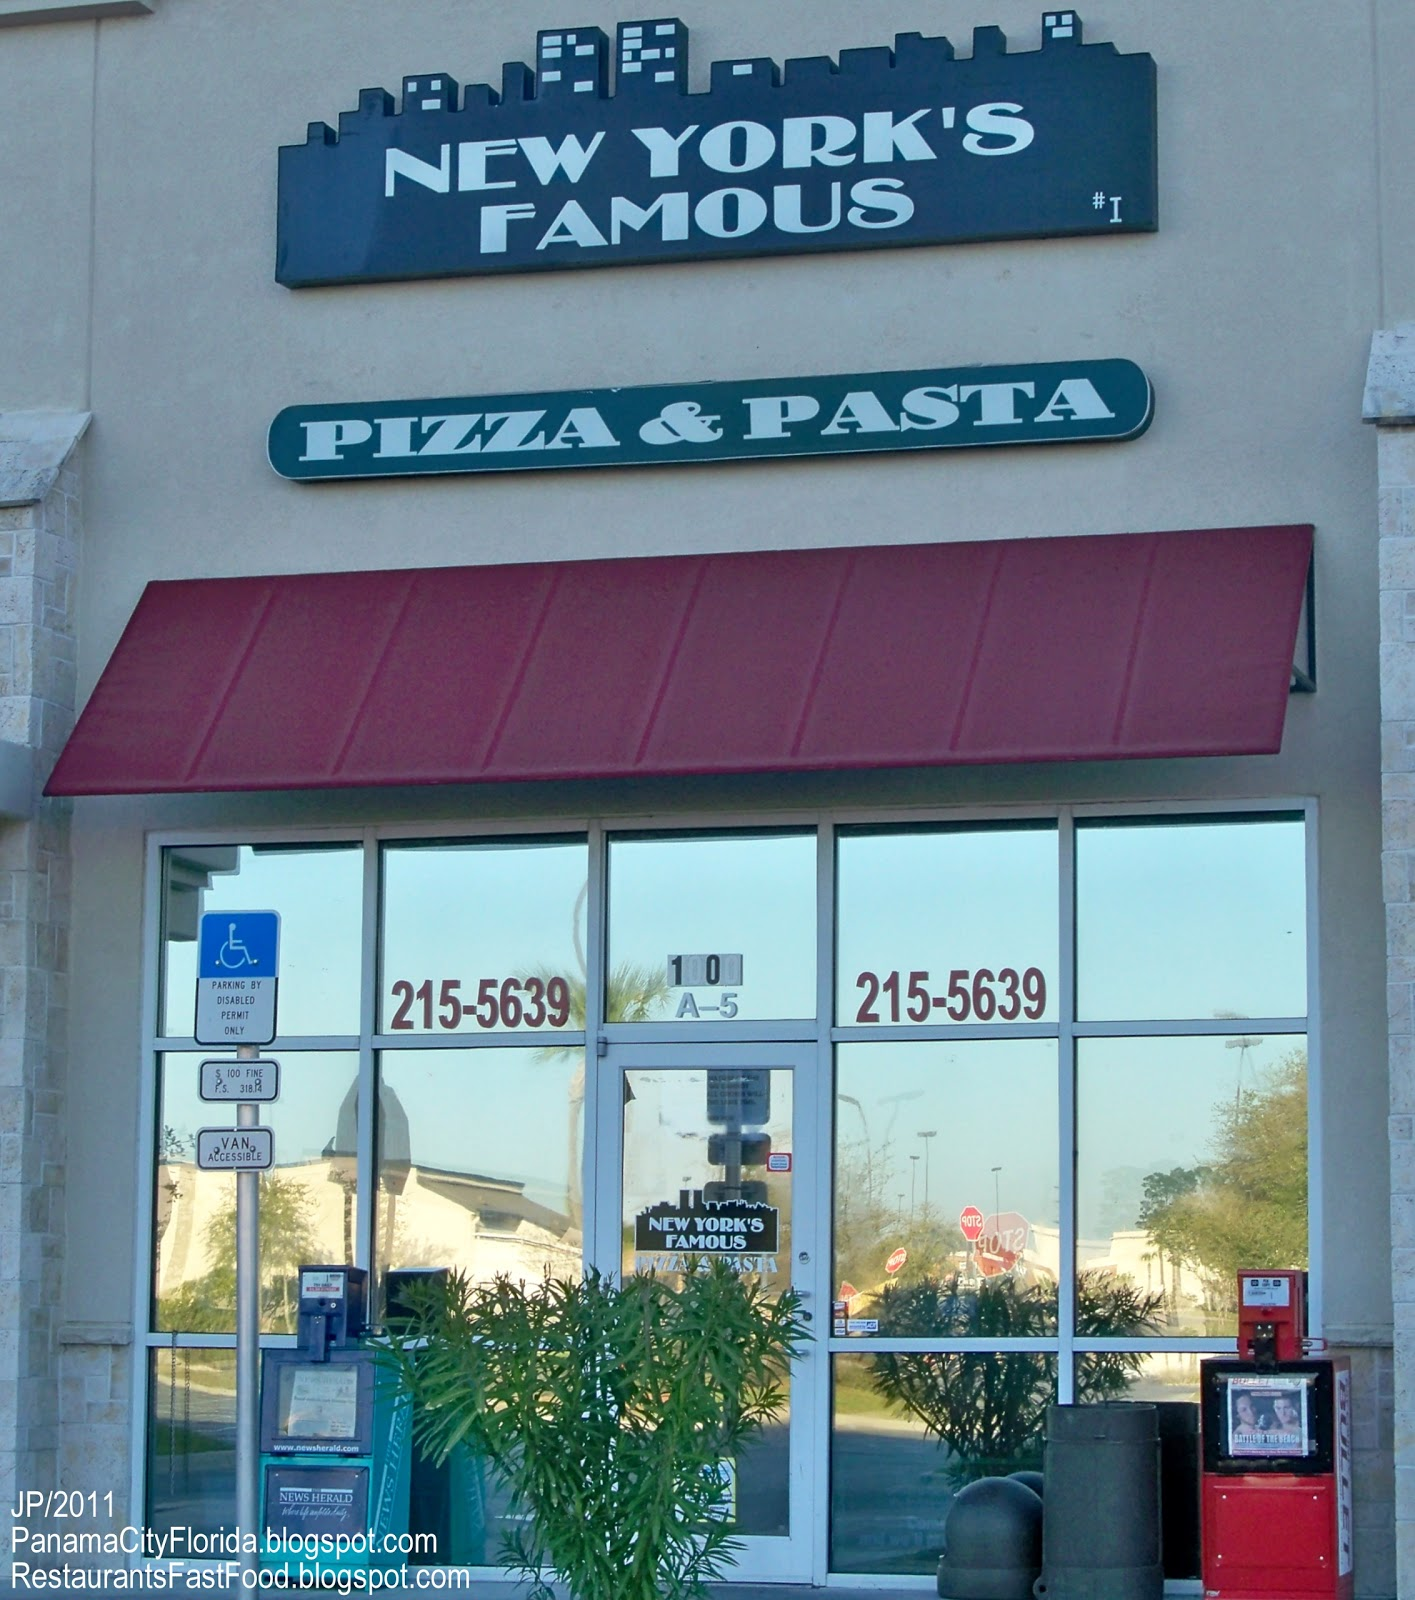 ... NEW YORK'S FAMOUS PIZZA & PASTA RESTAURANT PANAMA CITY FLORIDA,New